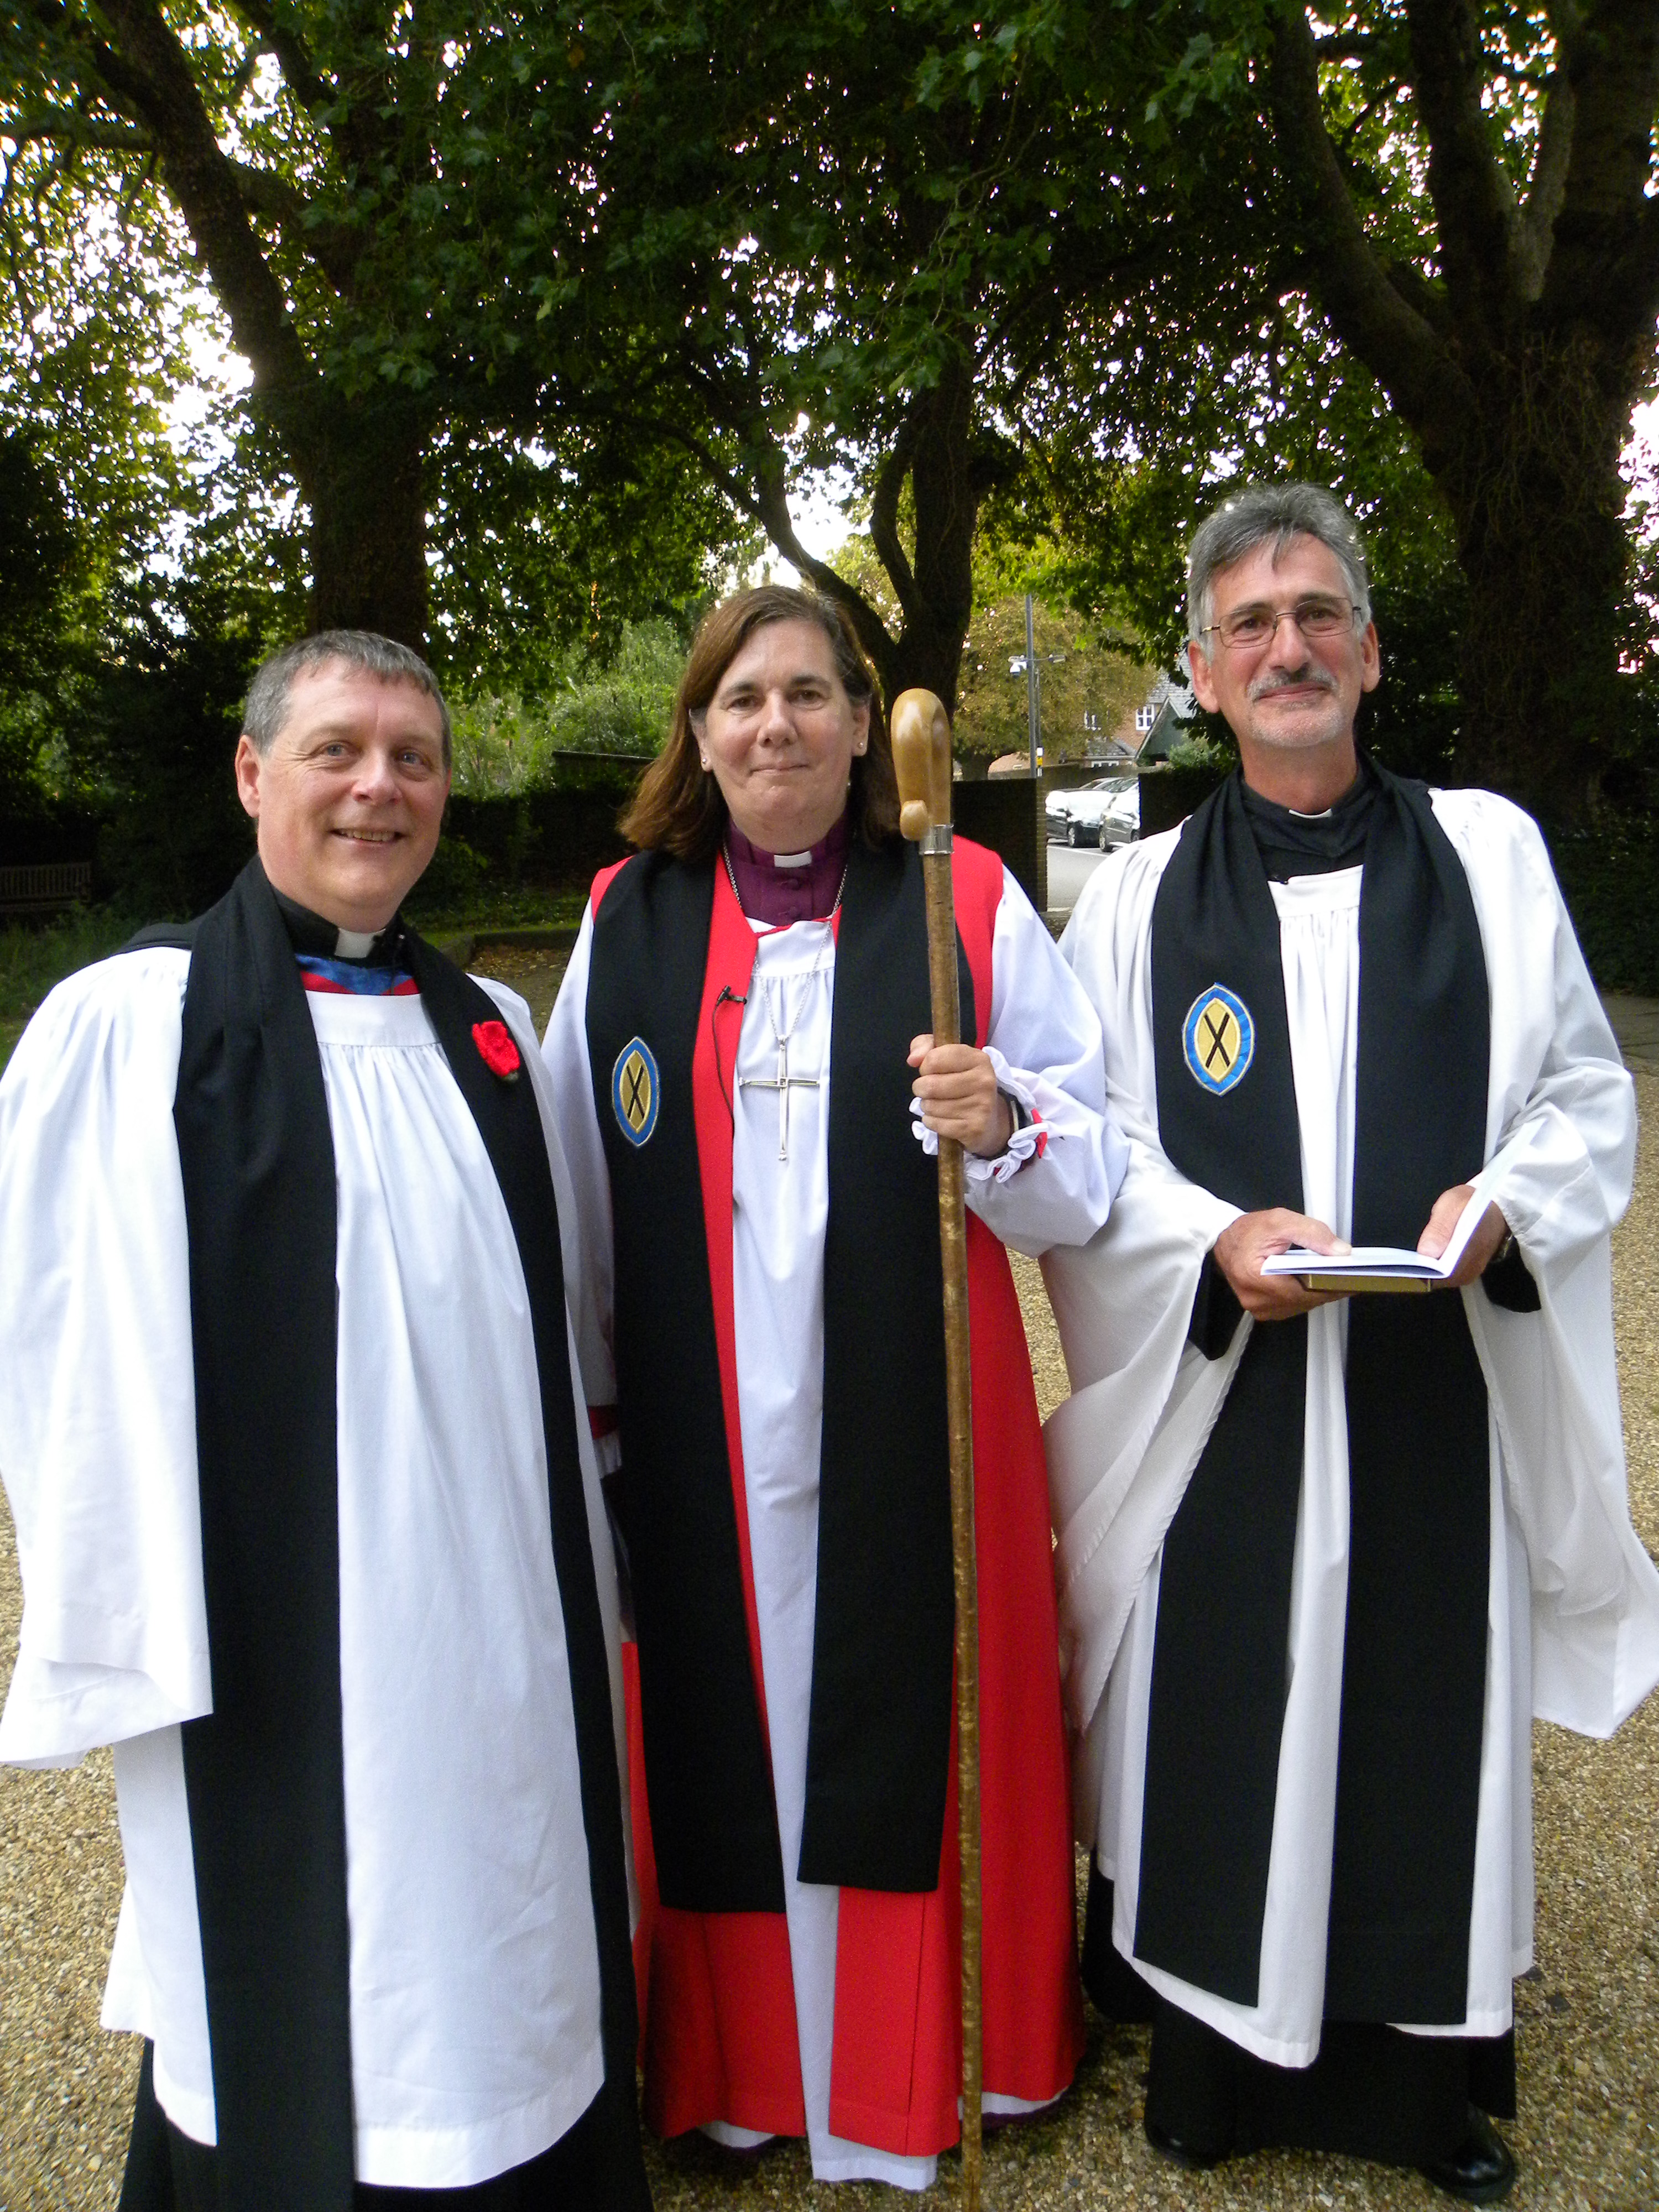 Andrew with the Bishop and Archdeacon